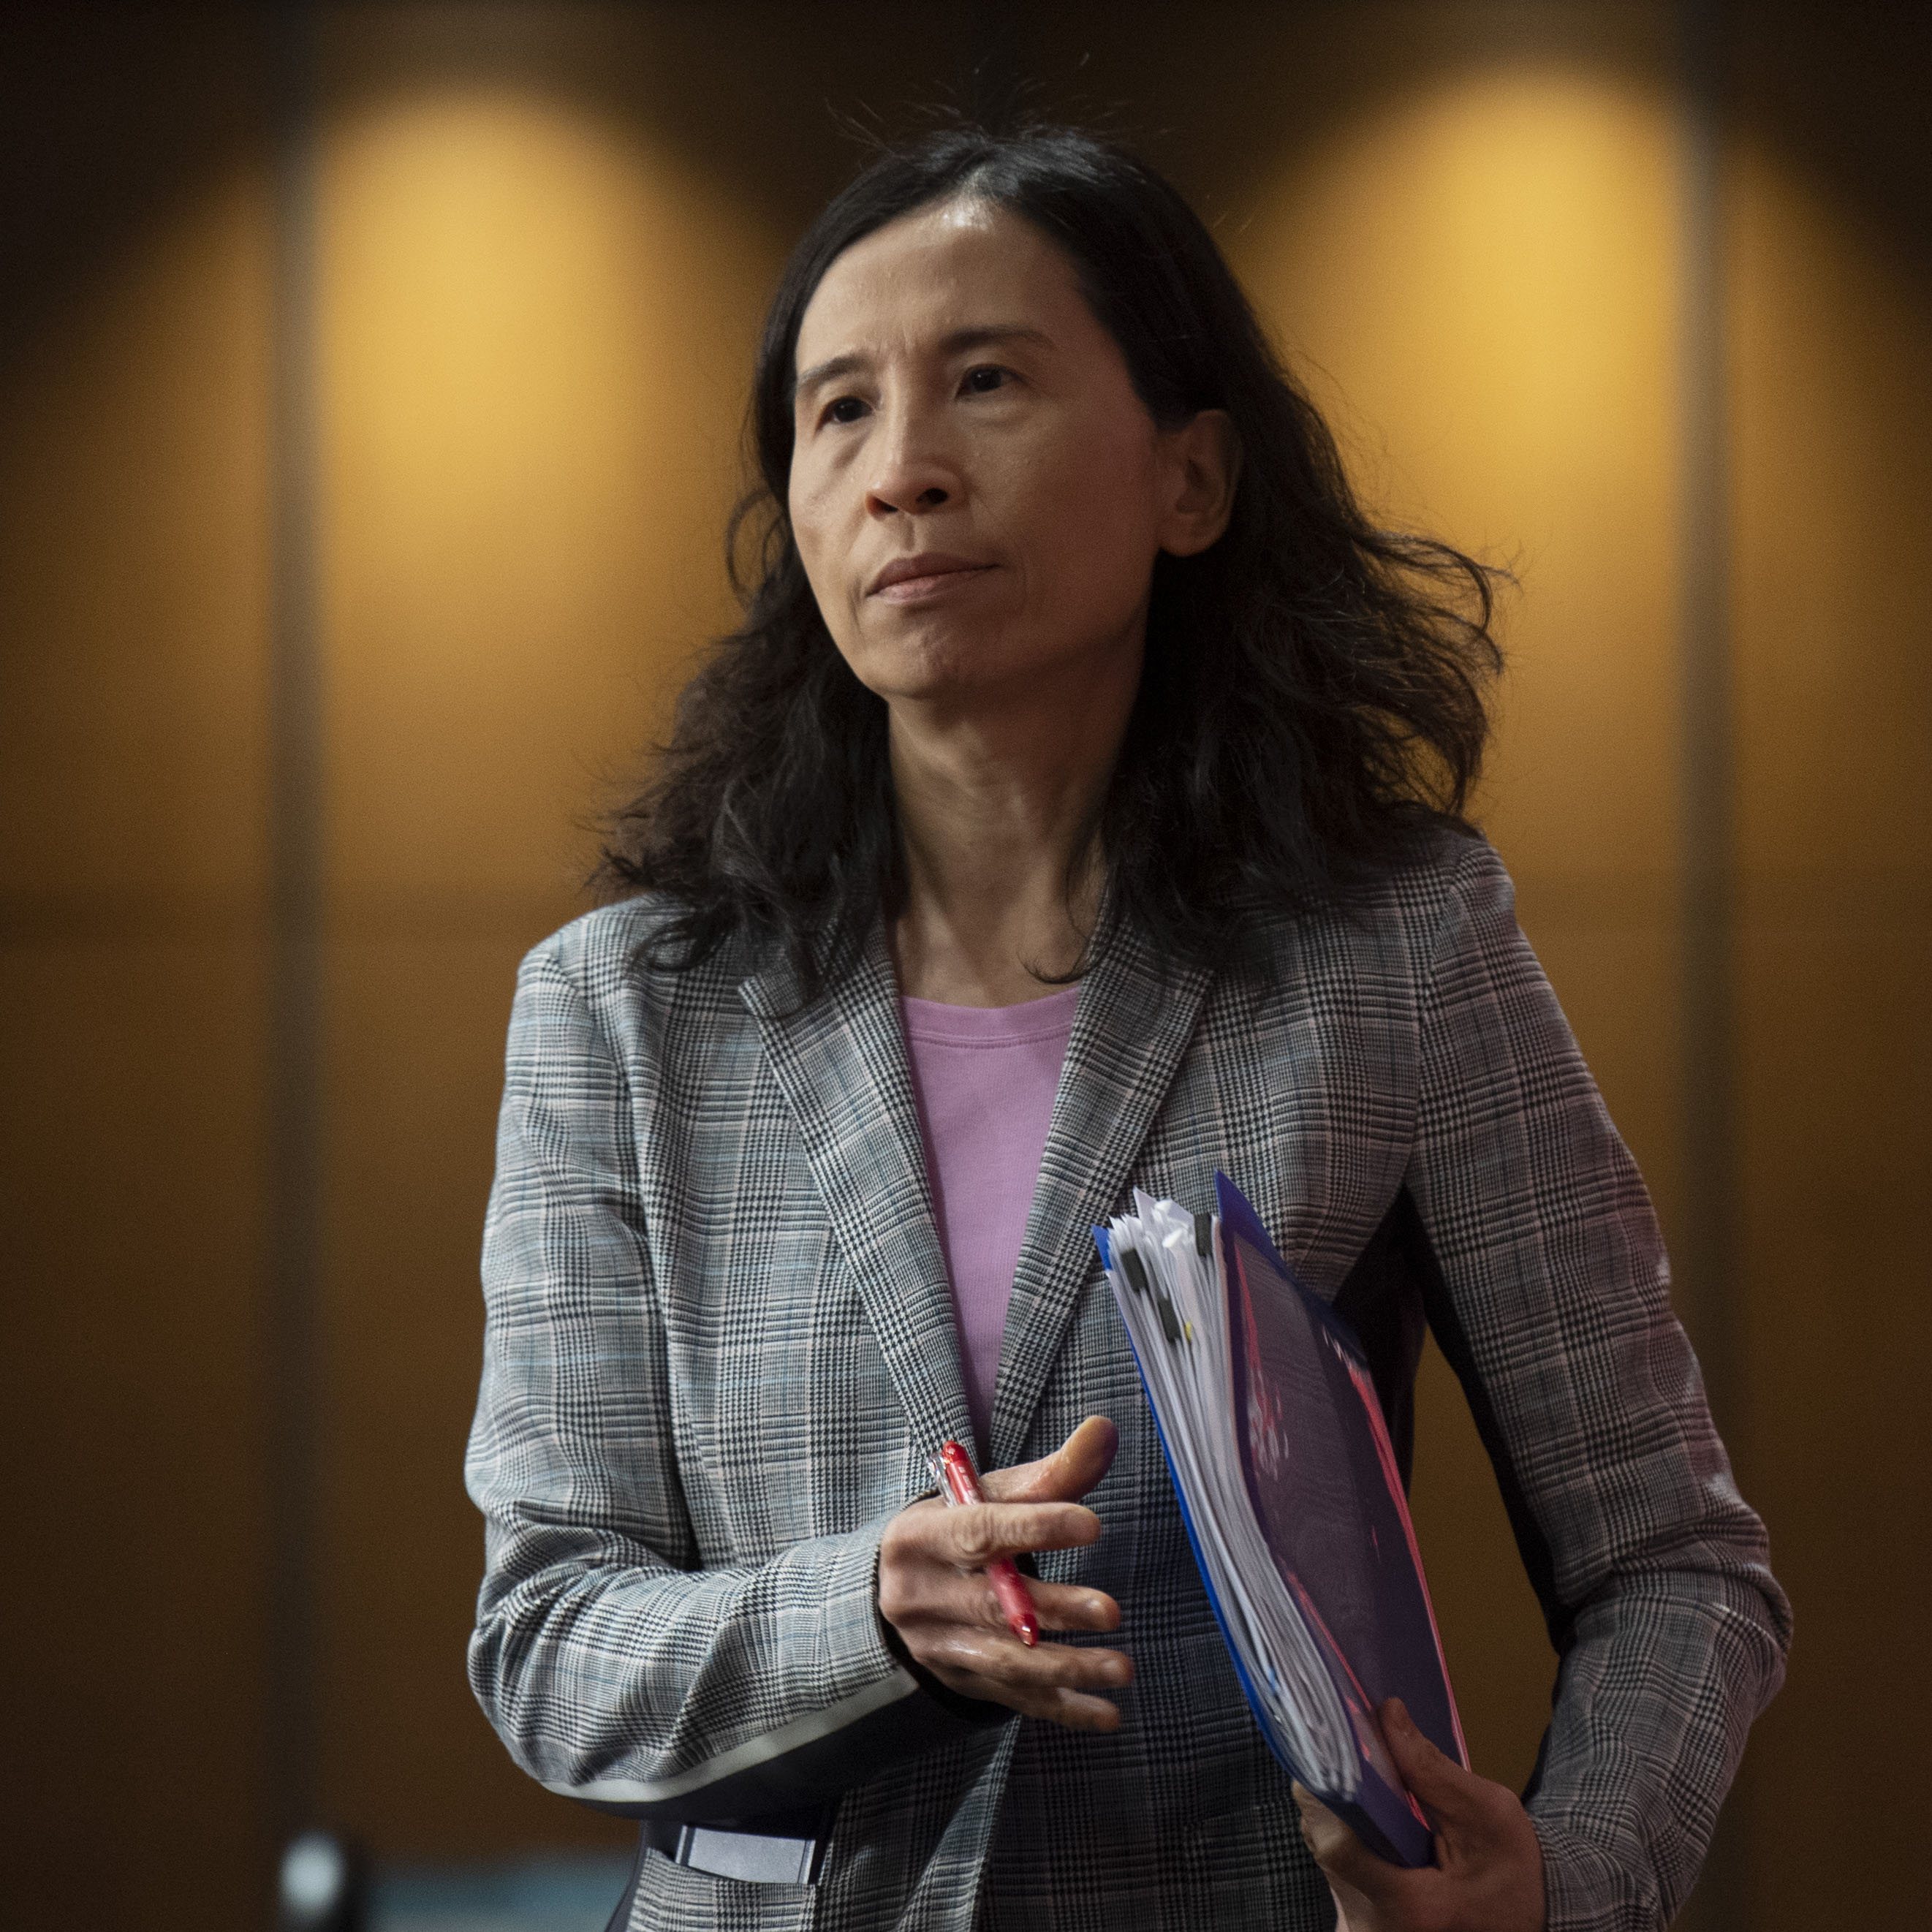 Chief Public Health Officer Theresa Tam takes her seat for a daily news conference, Thursday, May 7, 2020 in Ottawa. (Adrian Wyld/CP)